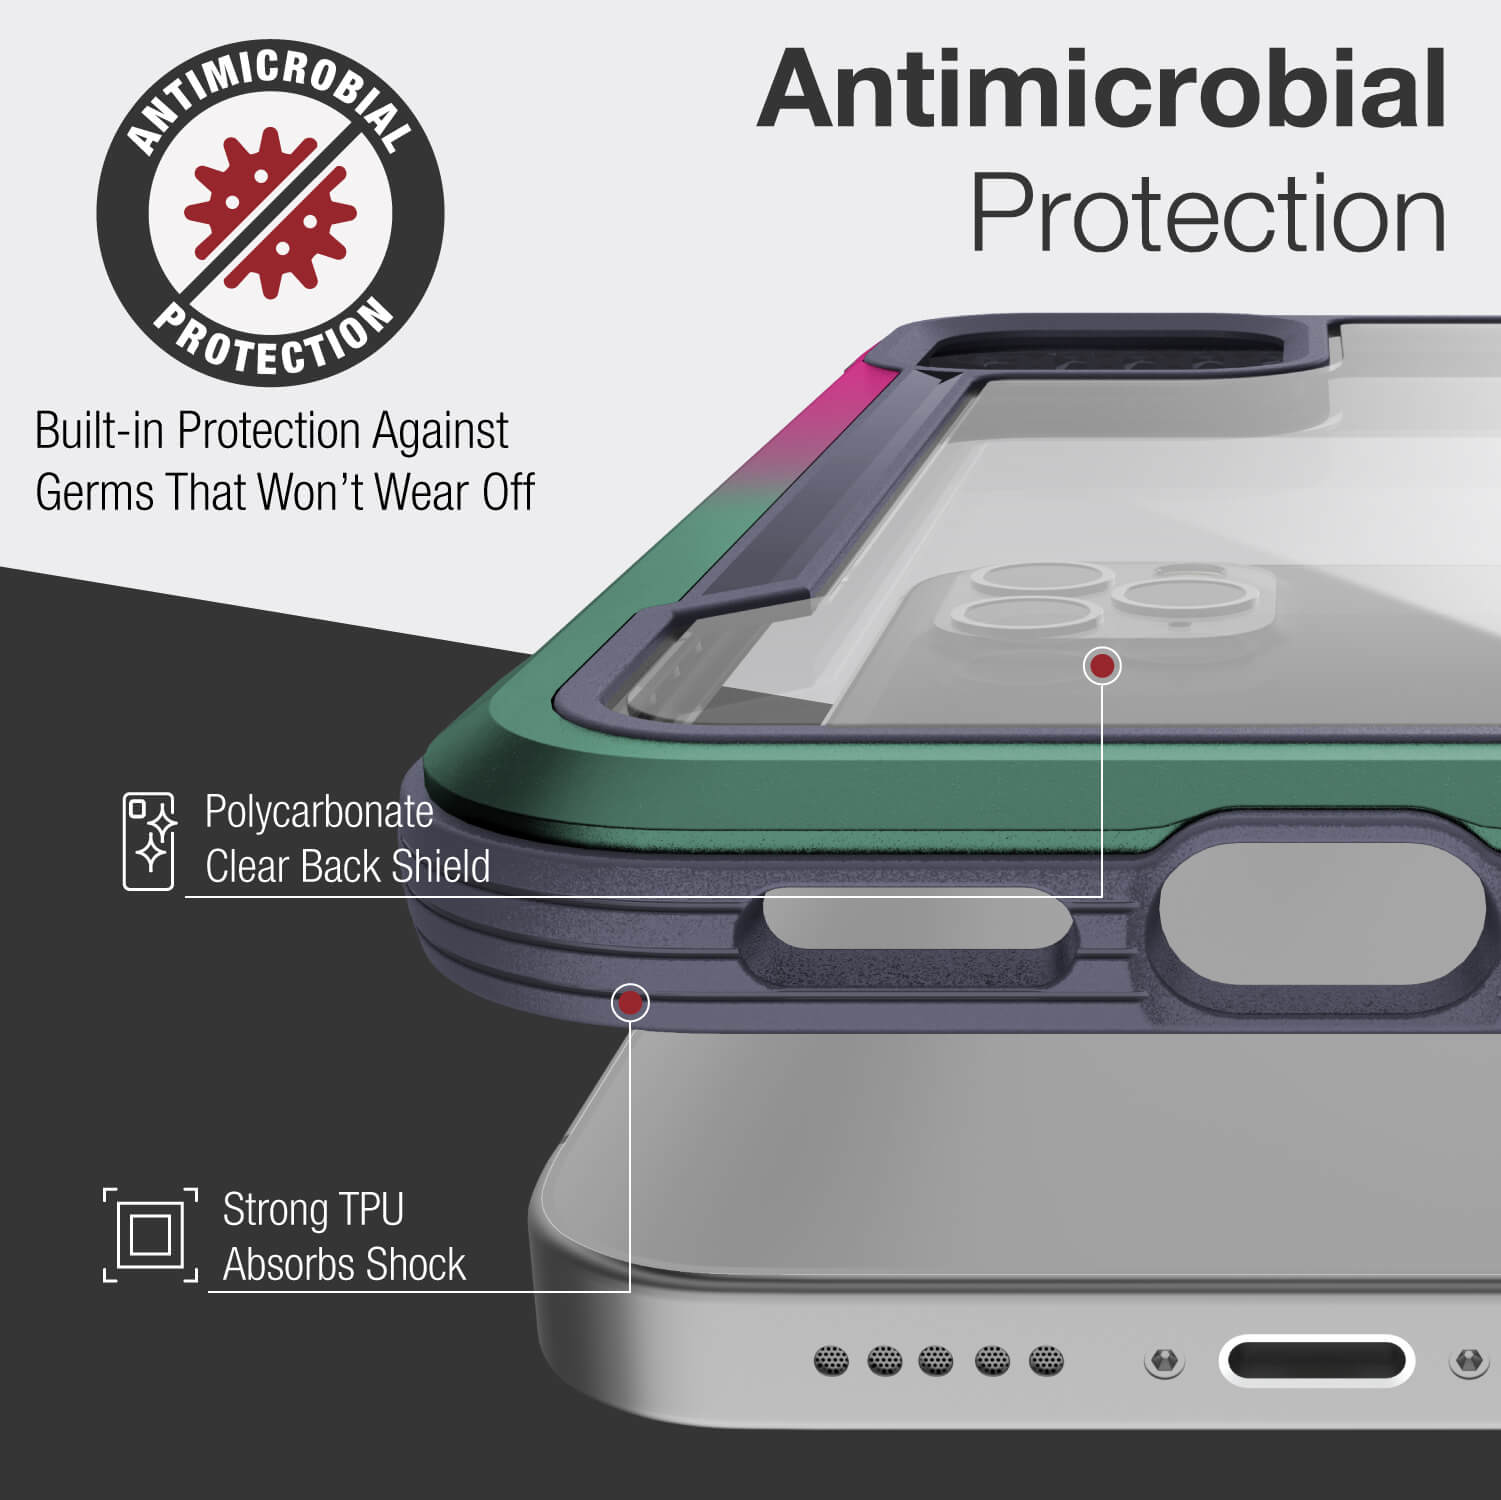 Infographic showing Anti-bacterial protection and polycarbonate backing. Metal trims around the edges of the case